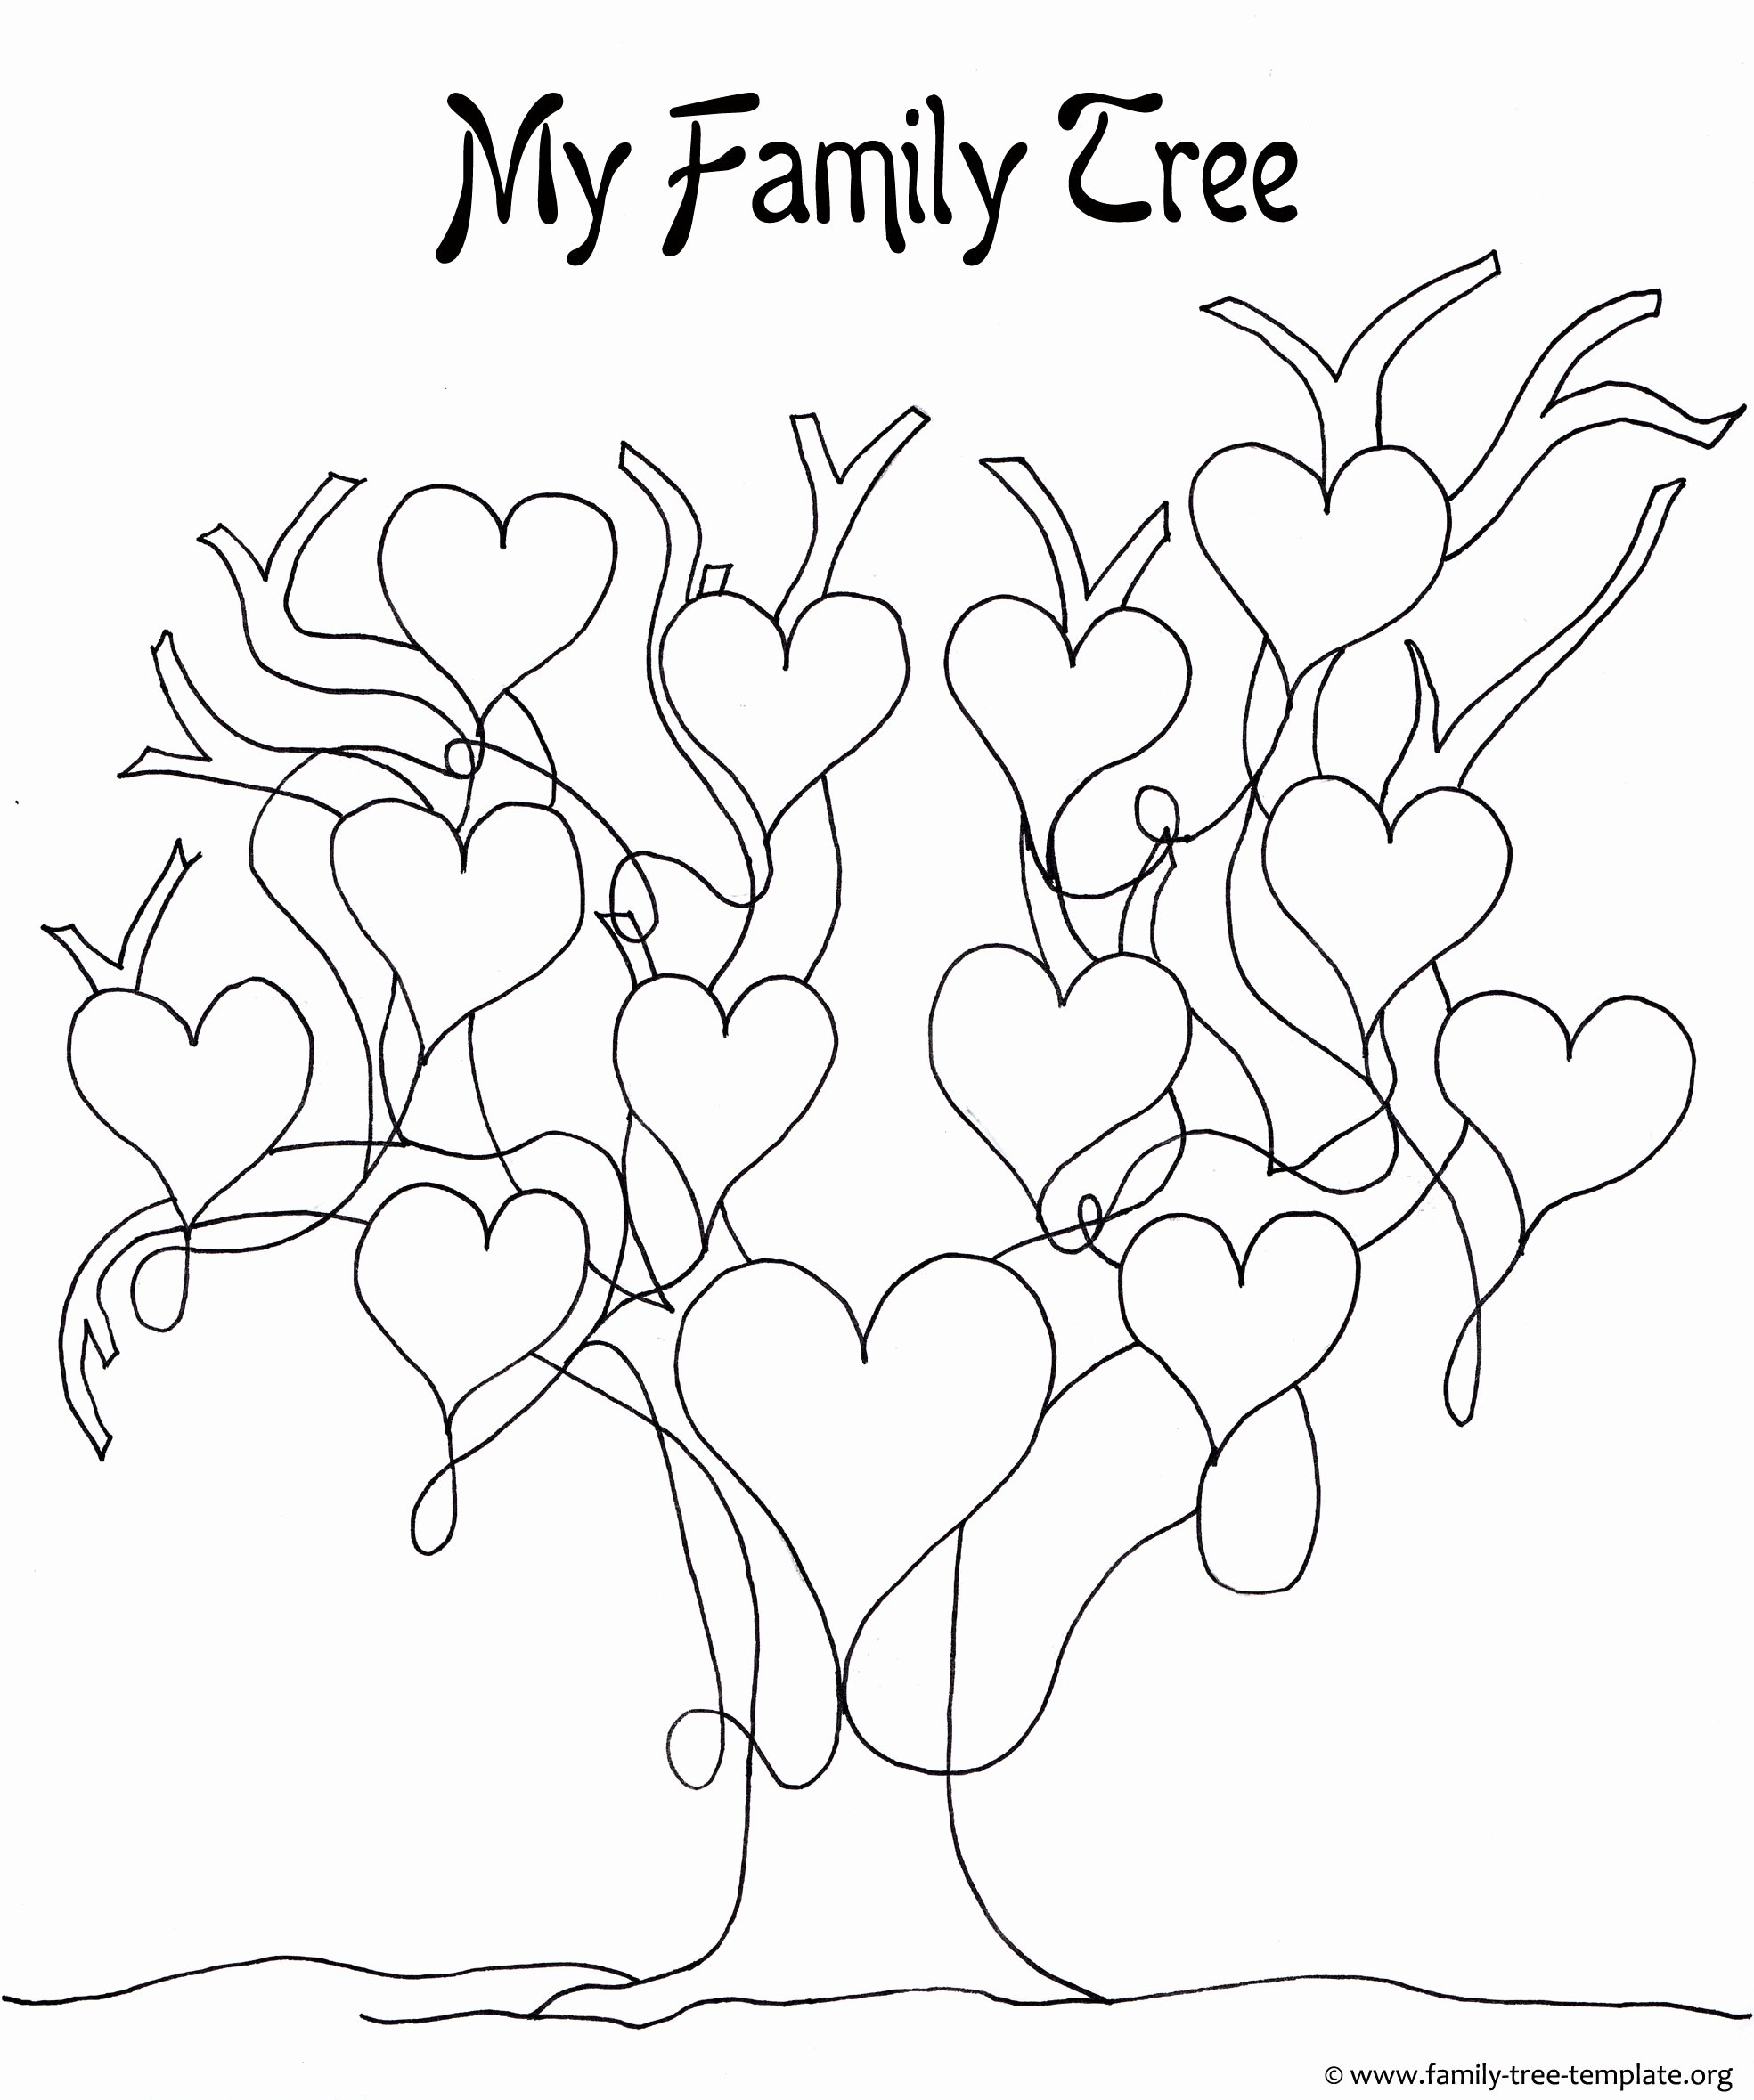 Tree Template for Family Tree Beautiful A Printable Blank Family Tree to Make Your Kids Genealogy